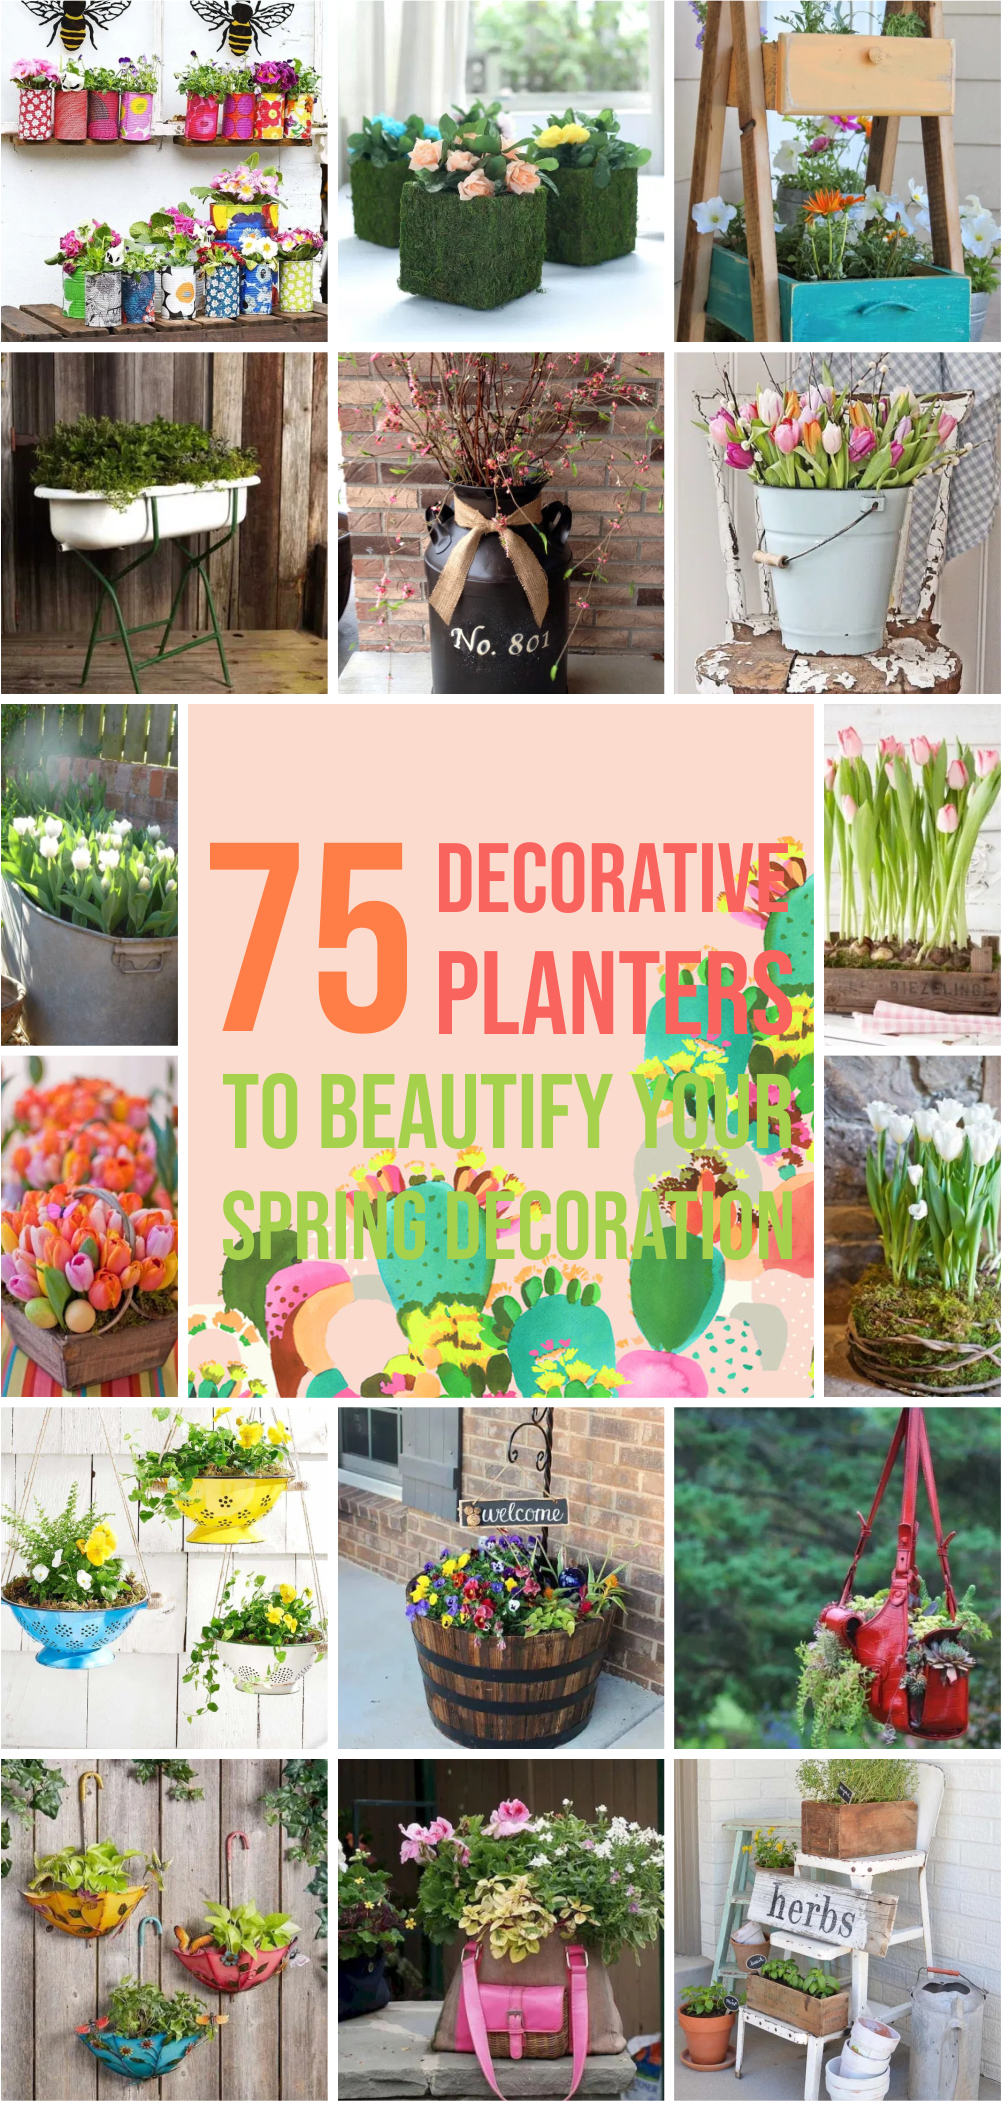 75 decorative planters to beautify your spring decoration 1